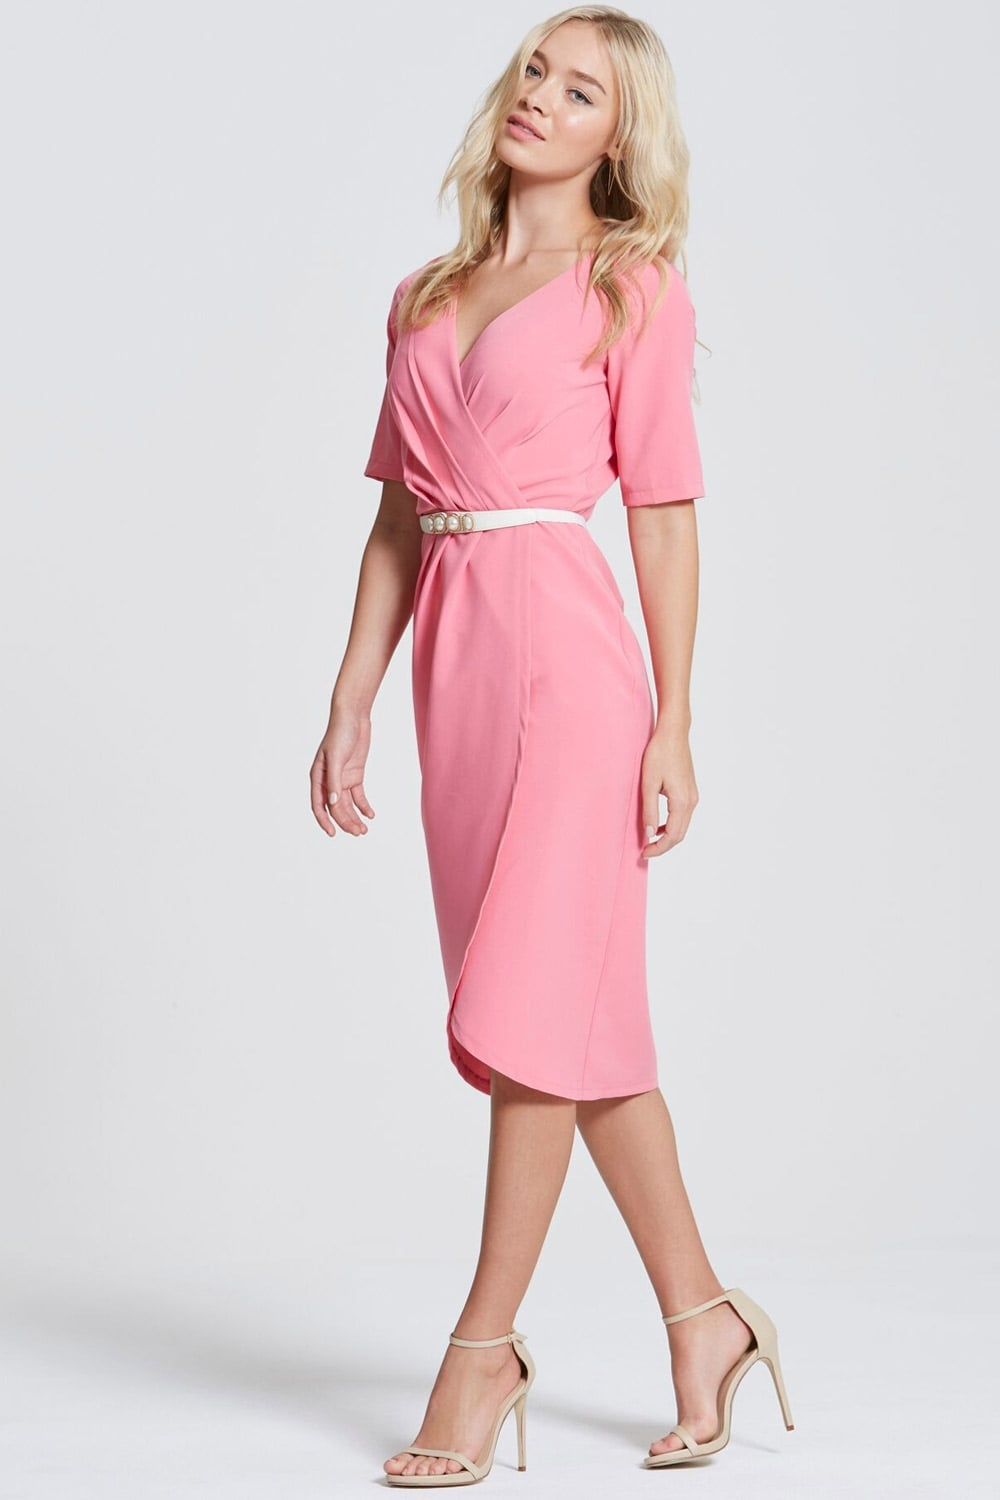 The midi dress has changed a lot since it was first introduced into popular fashion. Today they are bolder and more beautiful than ever. For instance, the one with a pencil skirt bottom shows off a .